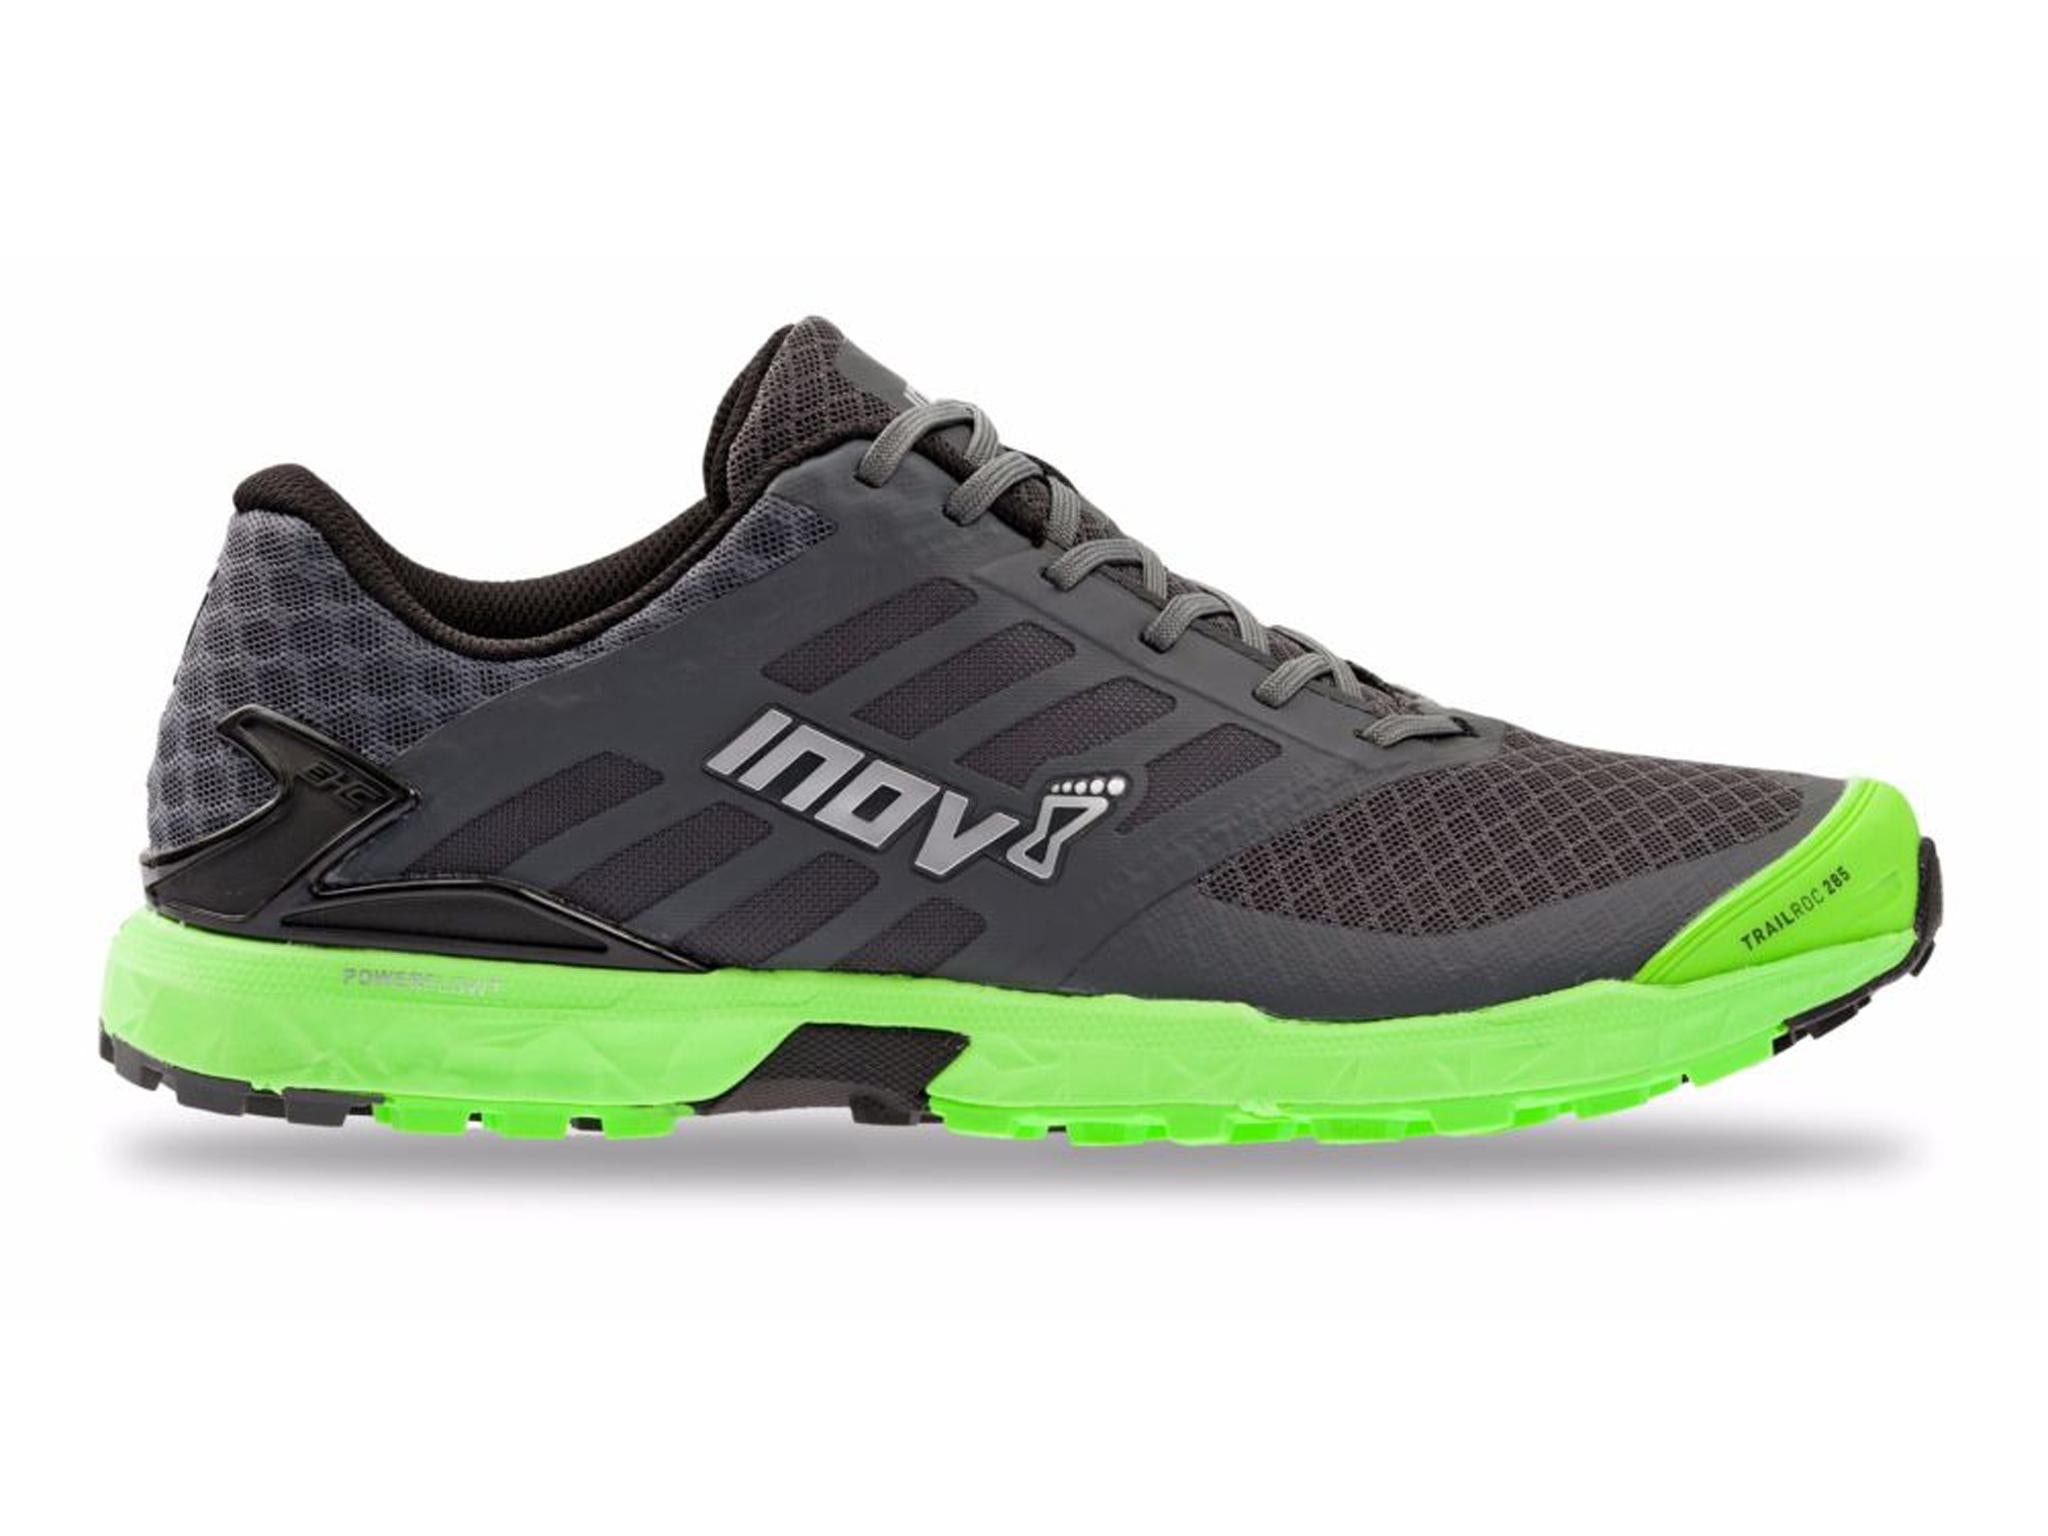 salomon s-lab sense ultra trail running shoes review india